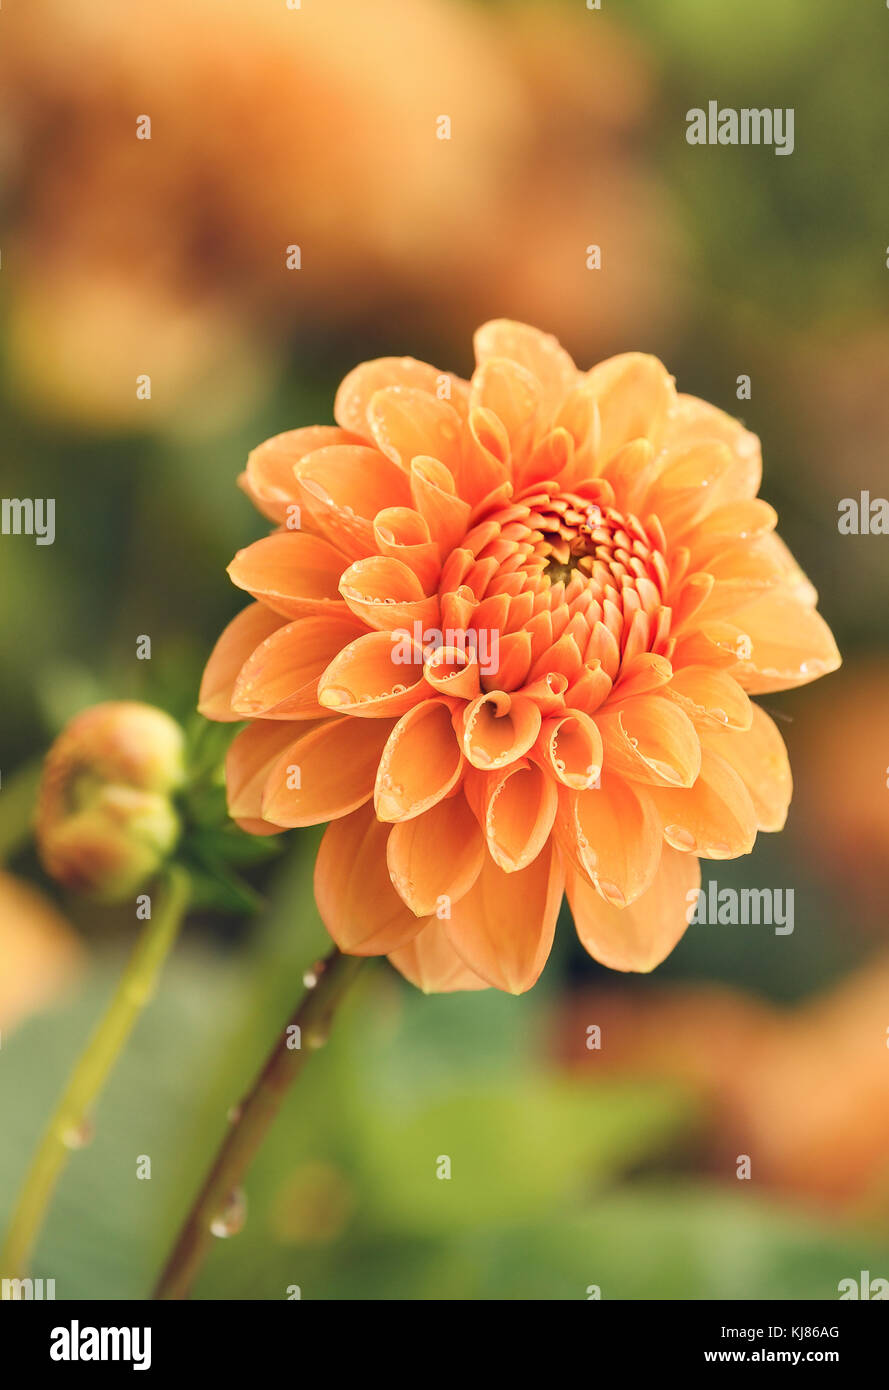 Yellow Dahlia Flower Blooming In Late Autumn Water Drops On Petals